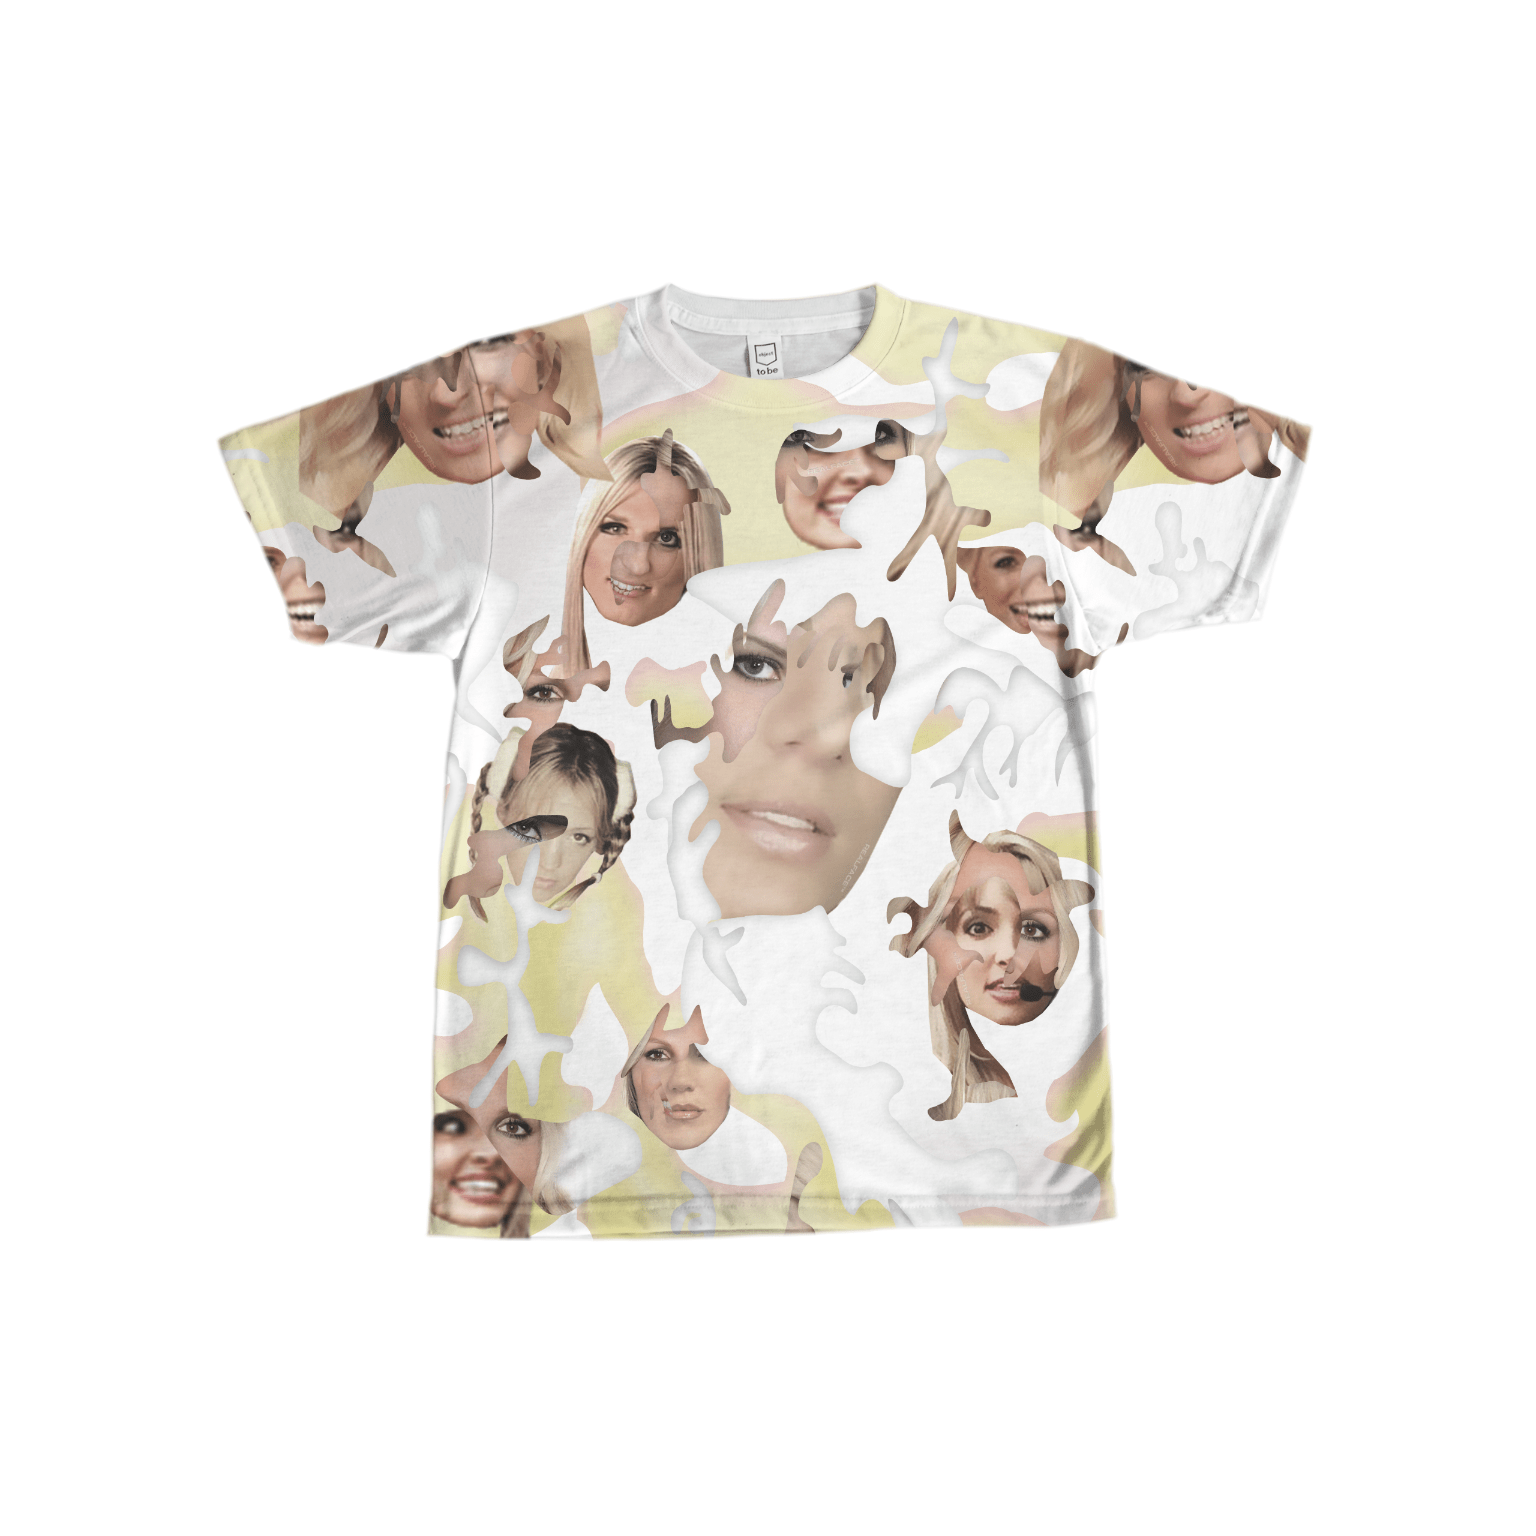 Britney Spears on a Glamoflage shirt